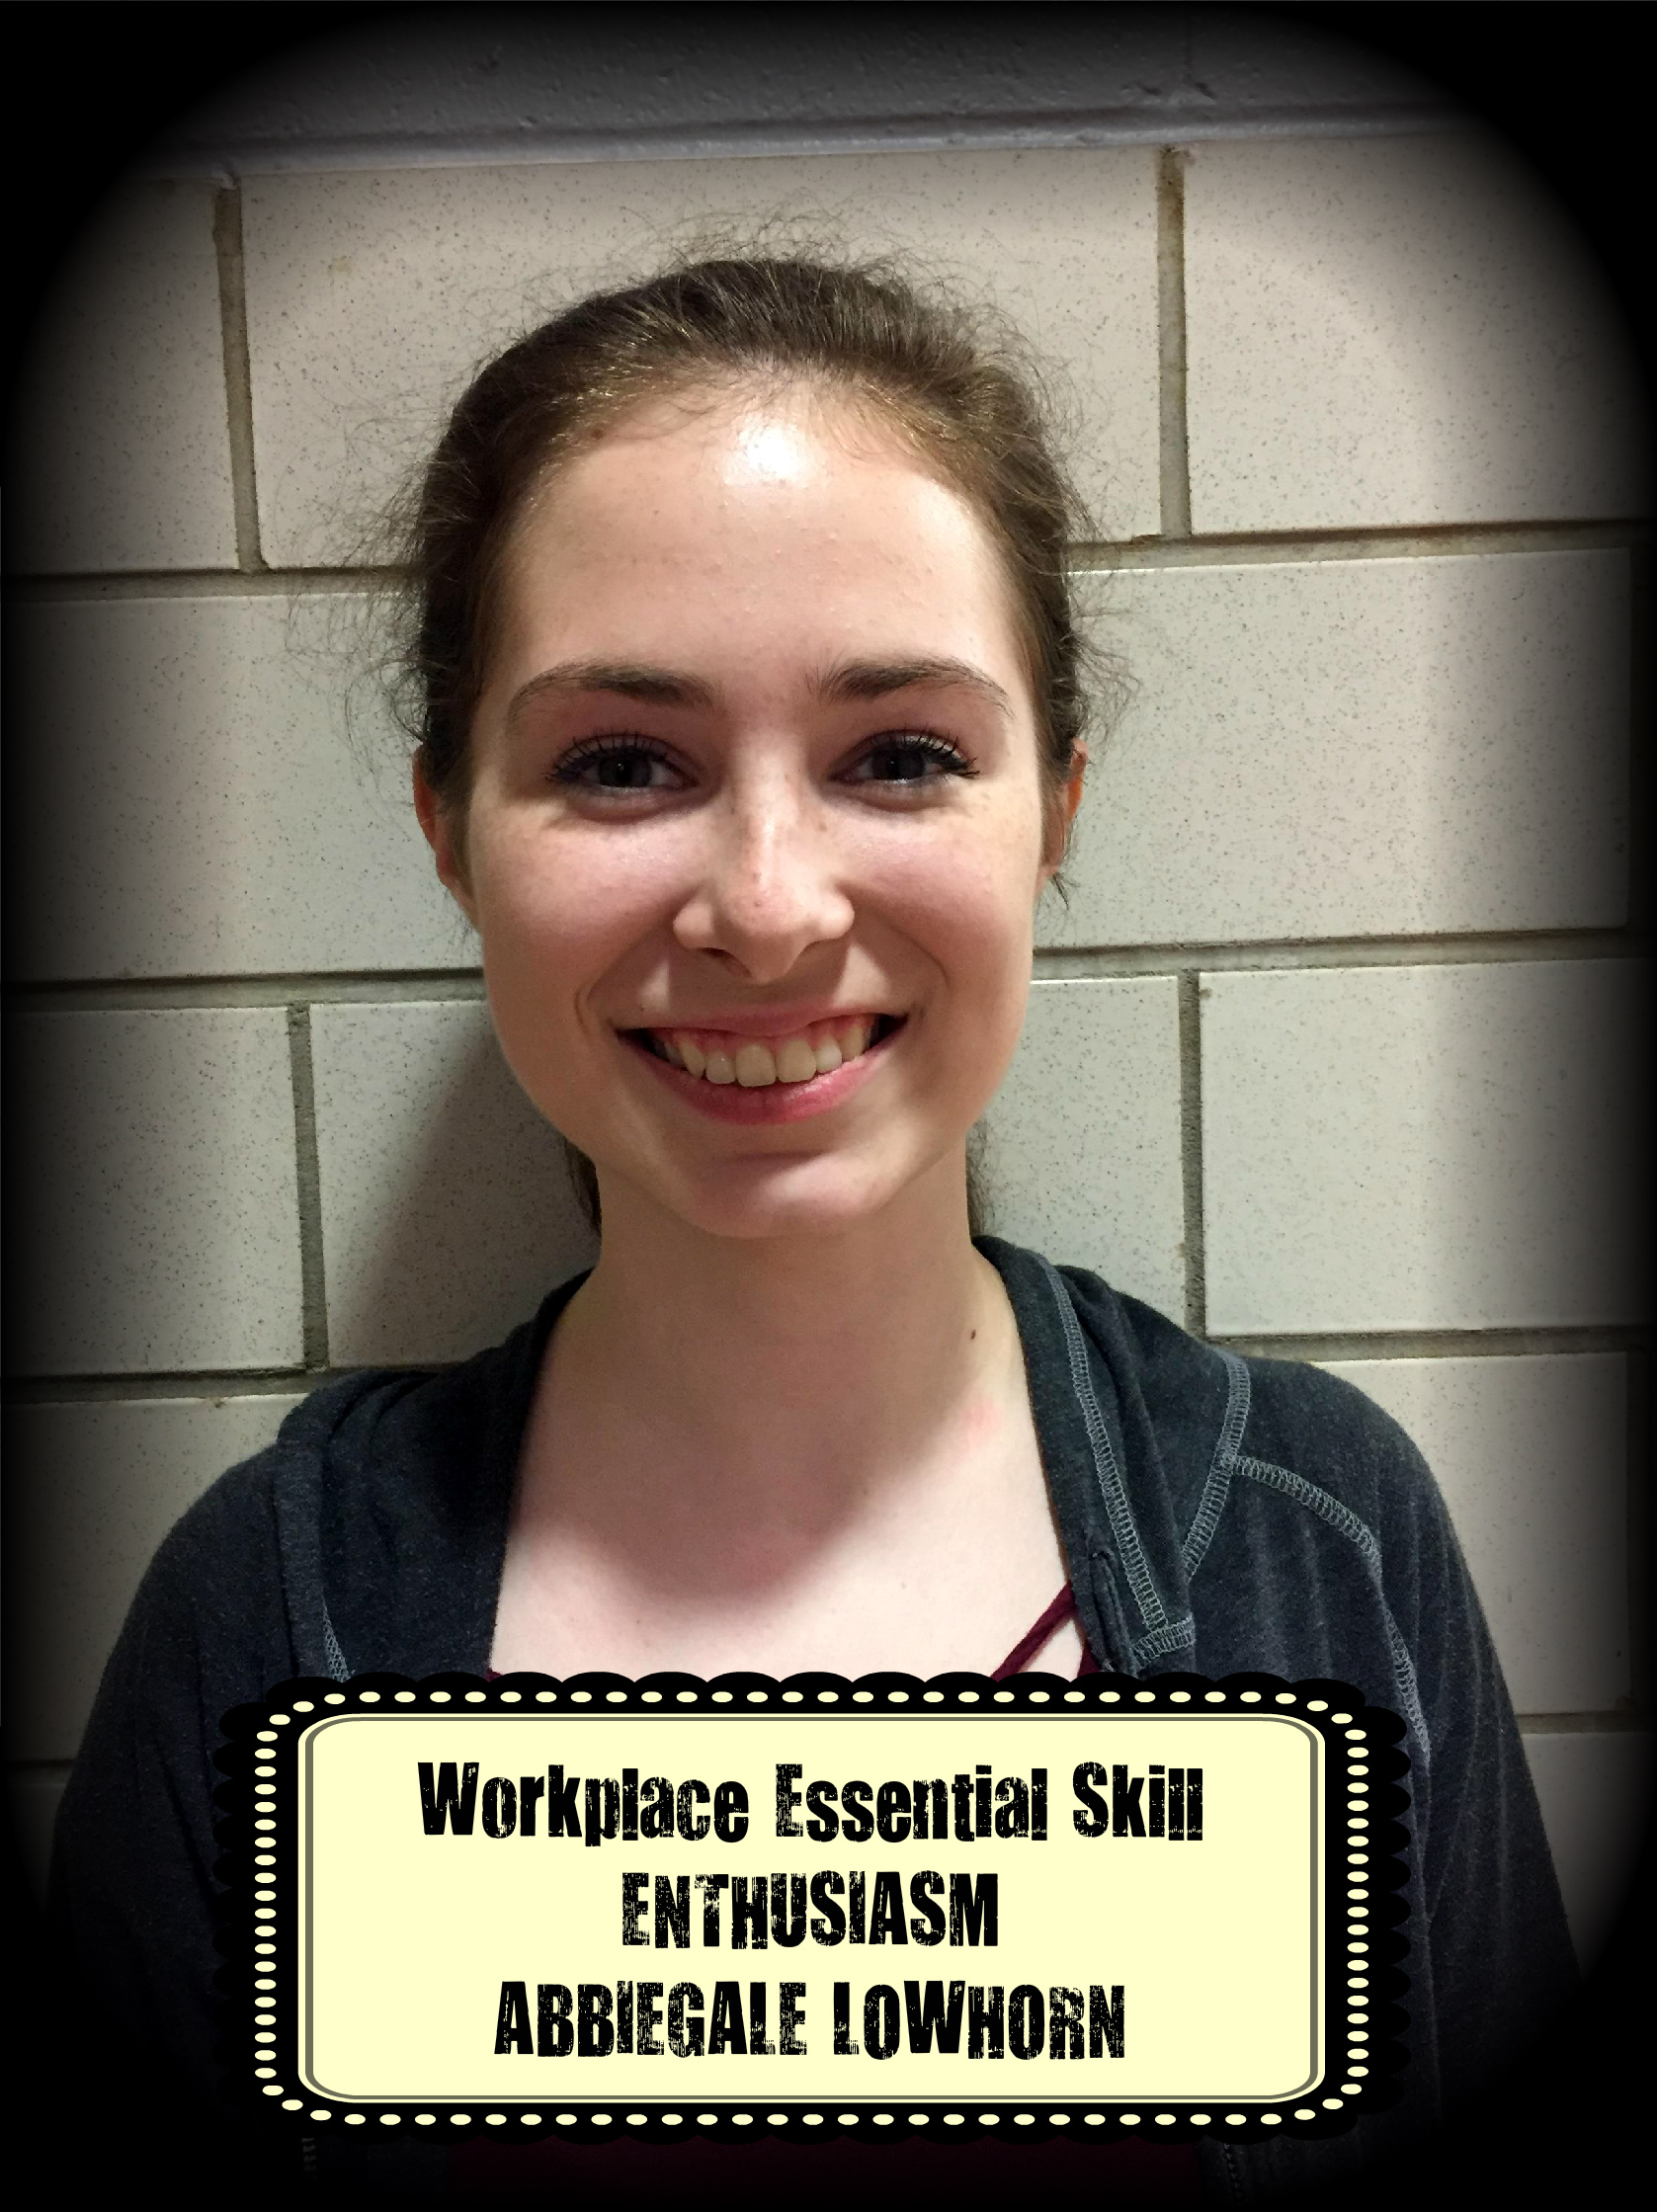 Abbiegale Lowhorn was awarded the Workplace Essential Skill Award for ENTHUSIASM in Business.